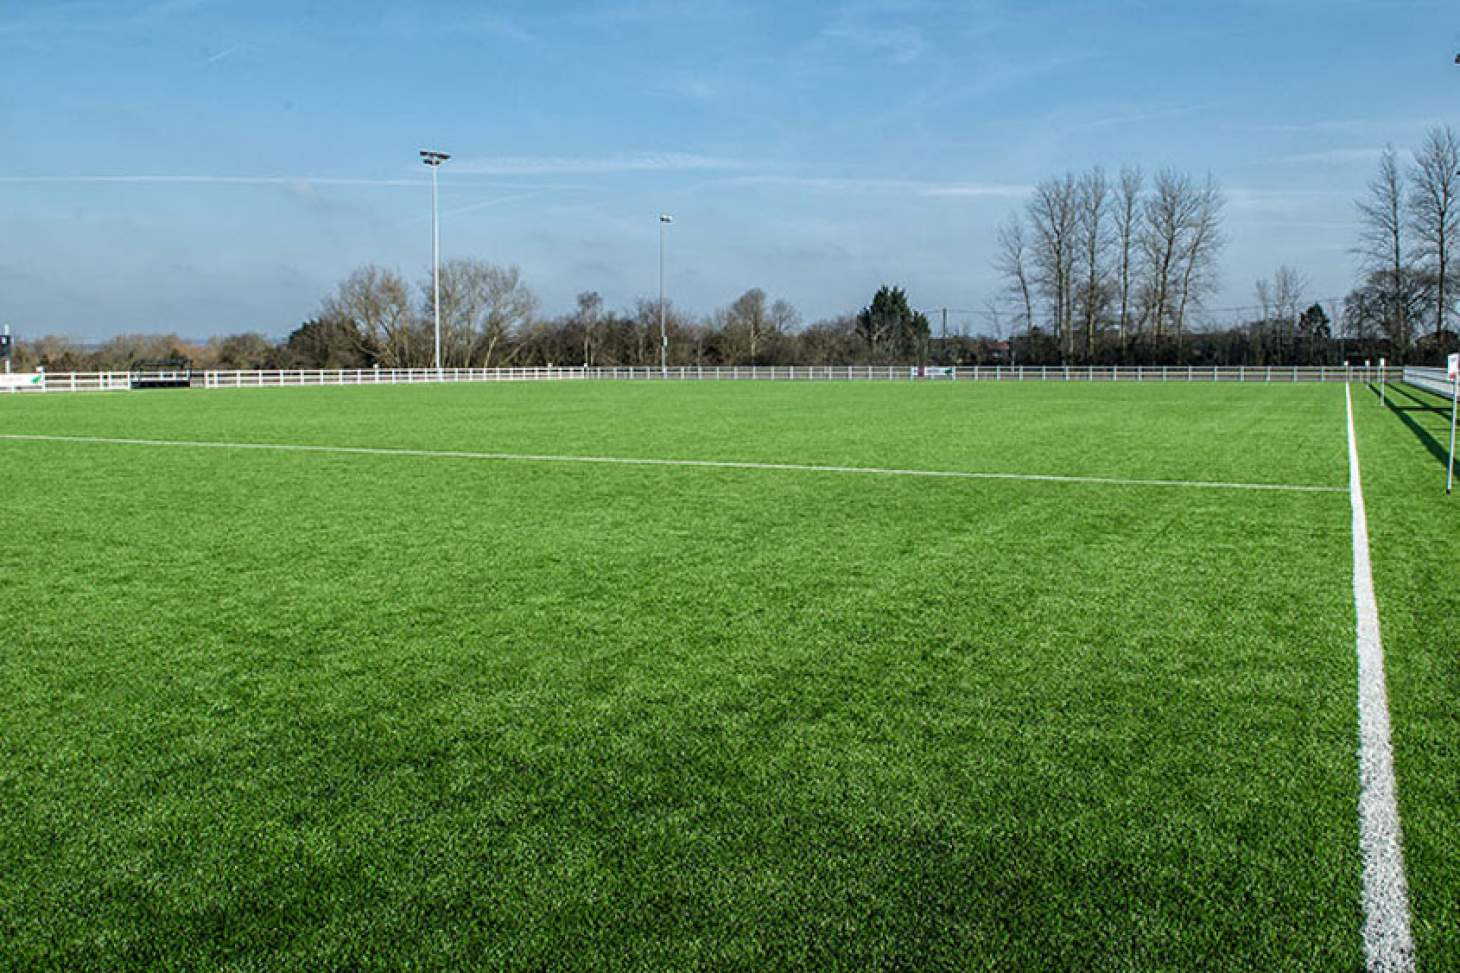 PlayFootball Whitley Bay 5 a side | 3G Astroturf football pitch